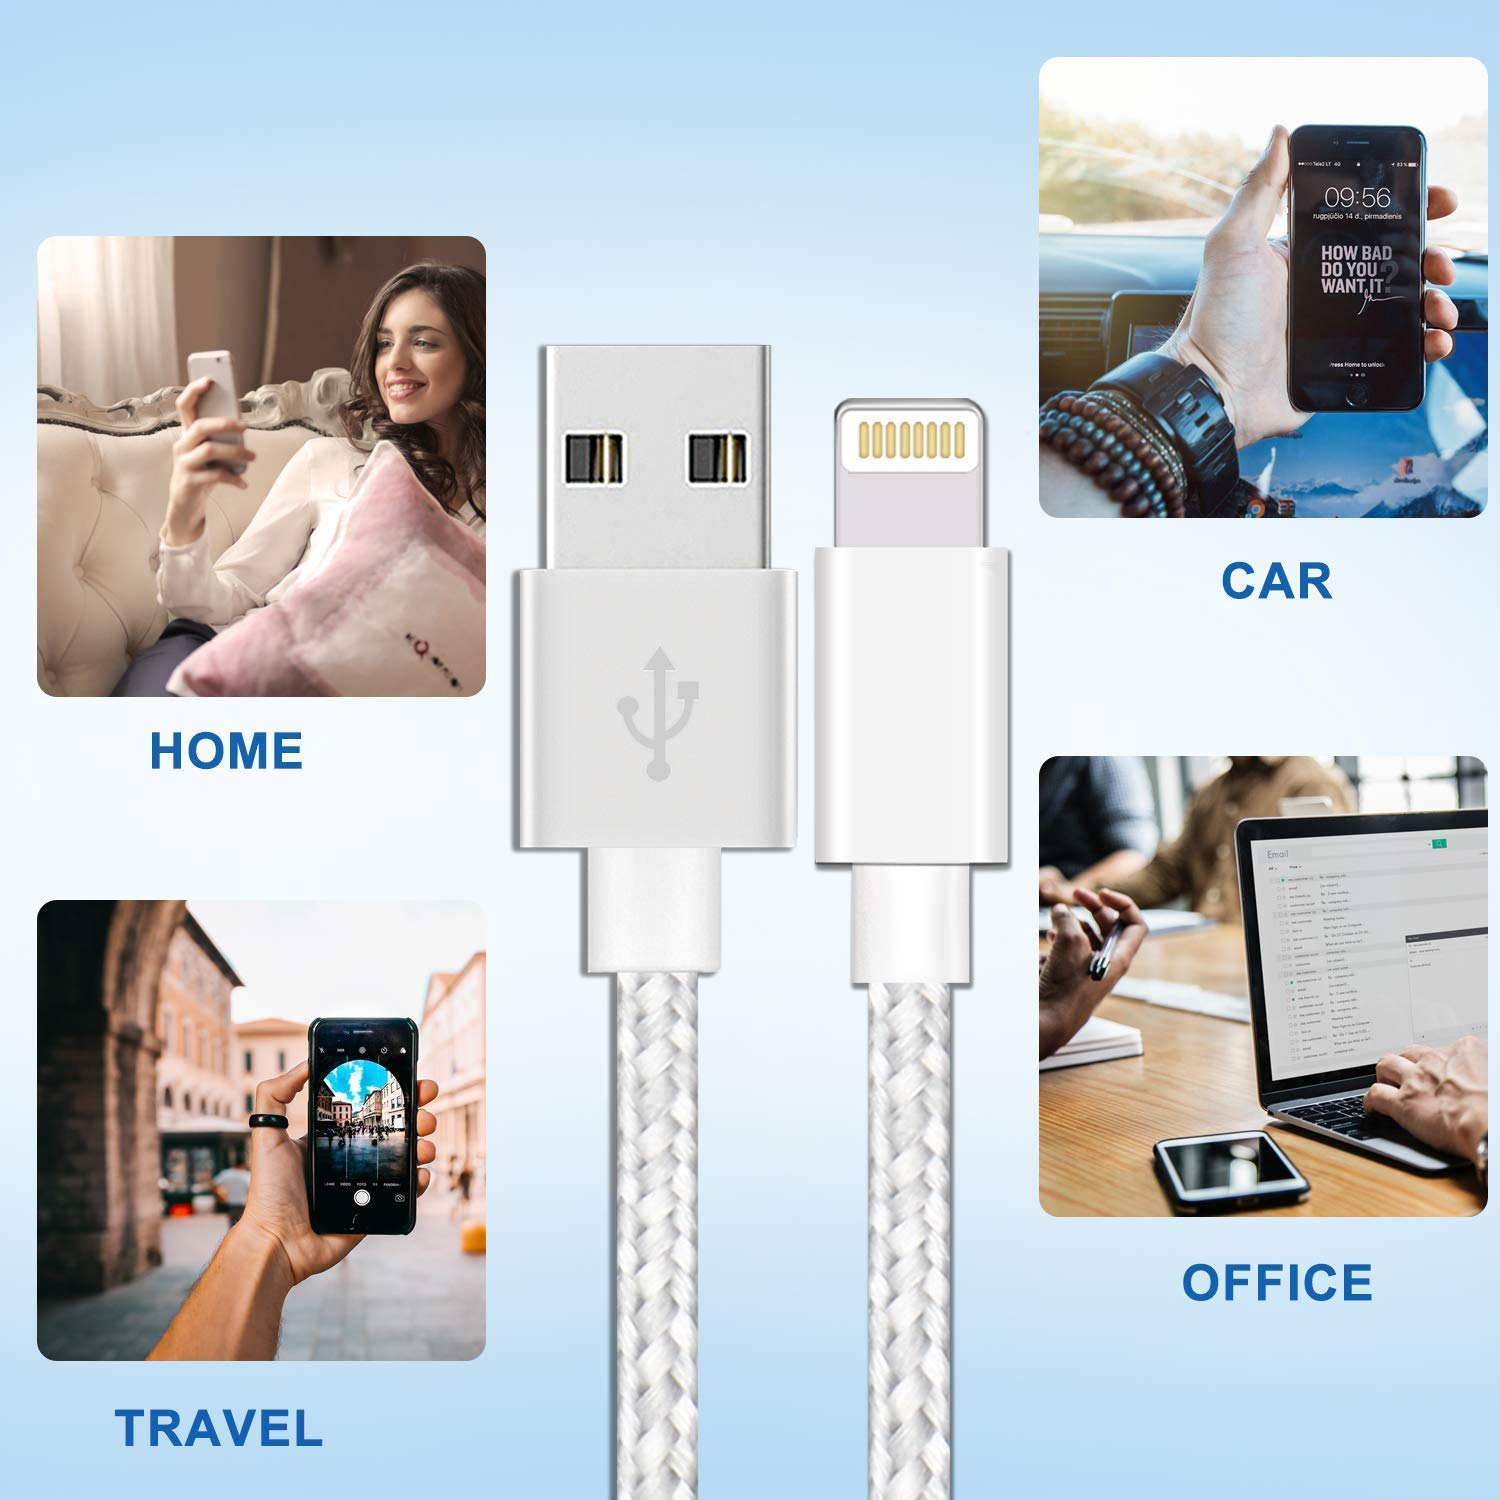 Aonsen Phone Cable Charger 3Pack 10FT Nylon Braided USB Charging /& Syncing Cord Compatible Phone XS Max XR X Phone 8 8 Plus 7 7 Plus 6s 6s Plus 6 6 Plus Nano Grey